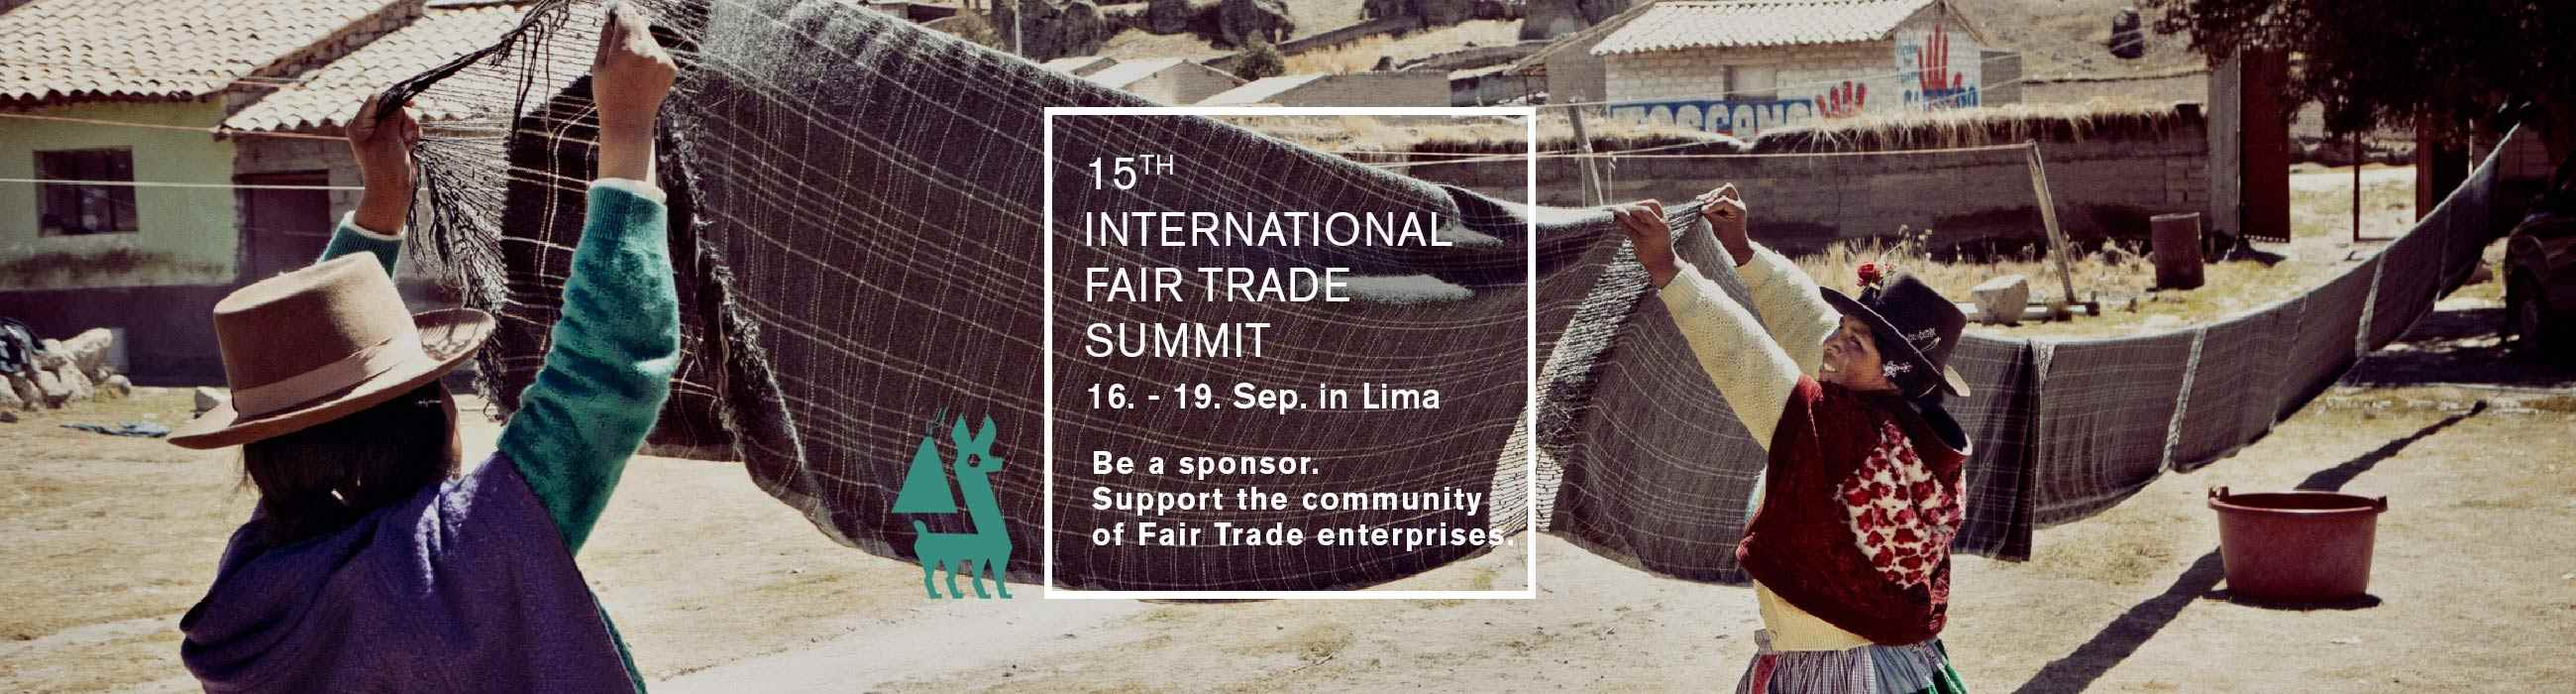 International Fair Trade Summit, Lima, Peru